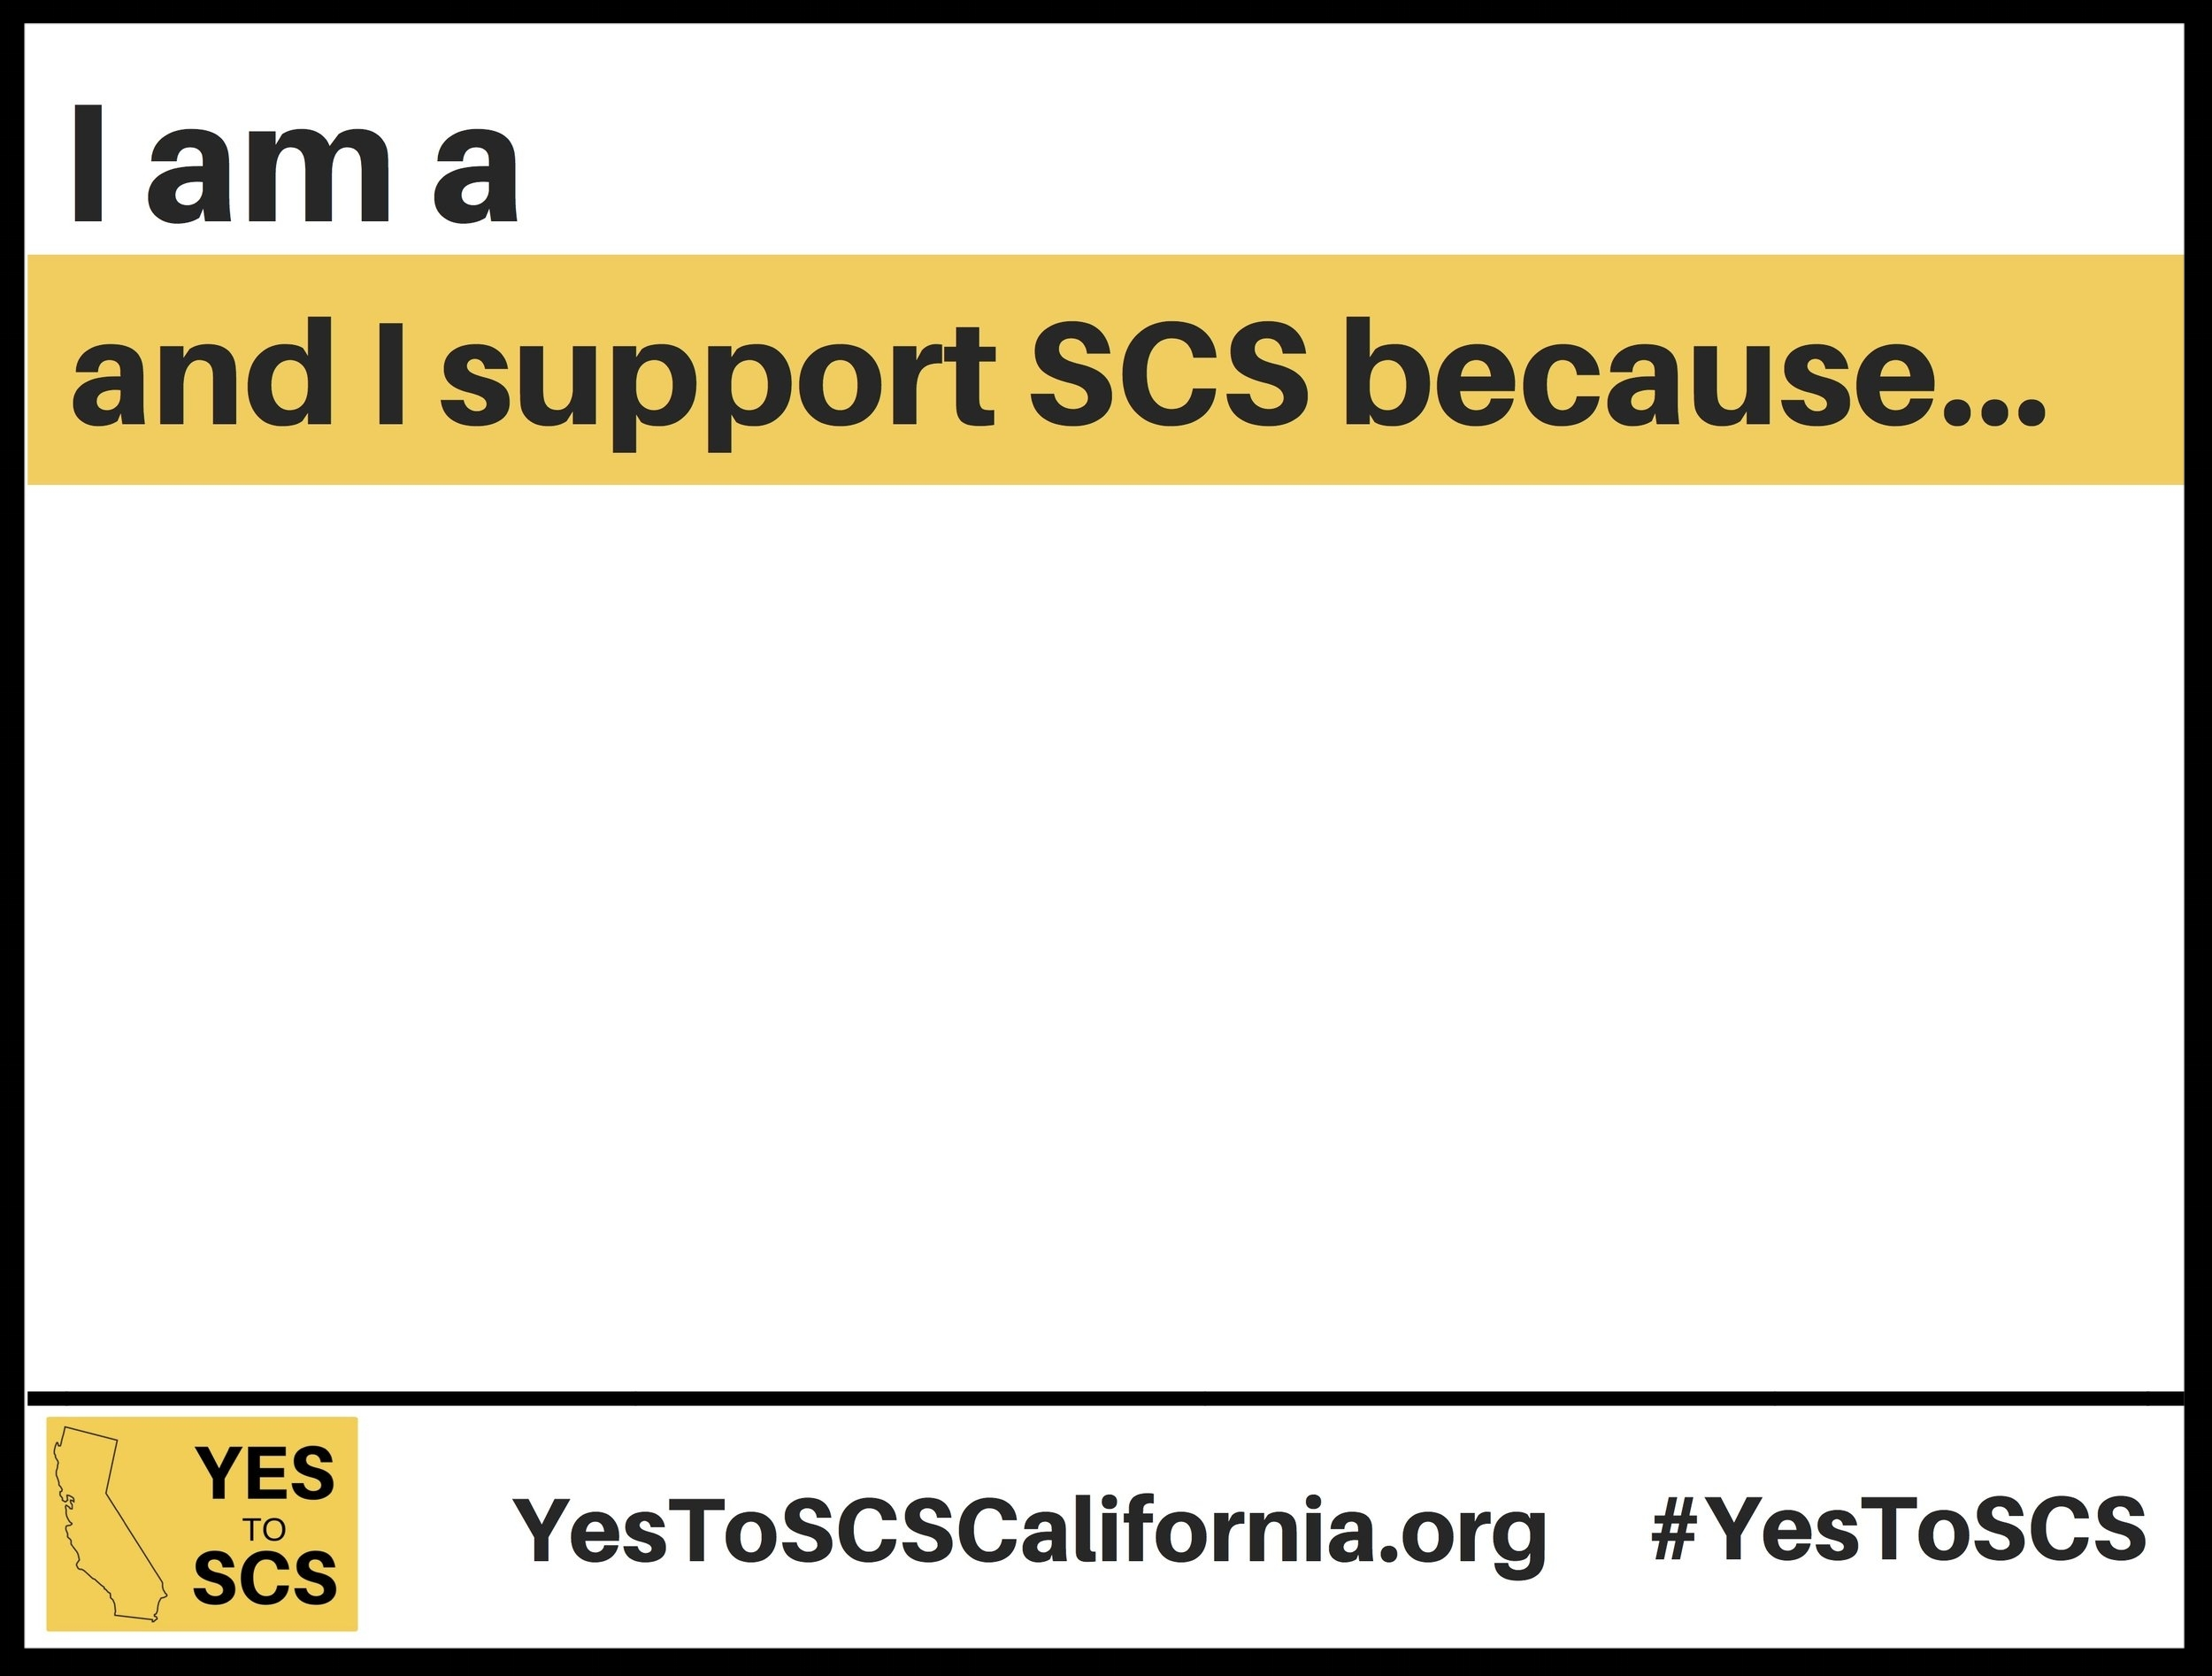 I am a ____ and I support SCS because... - Are you a mother, a doctor, a person that uses drugs, or a resident that supports SCS? Tell us why!